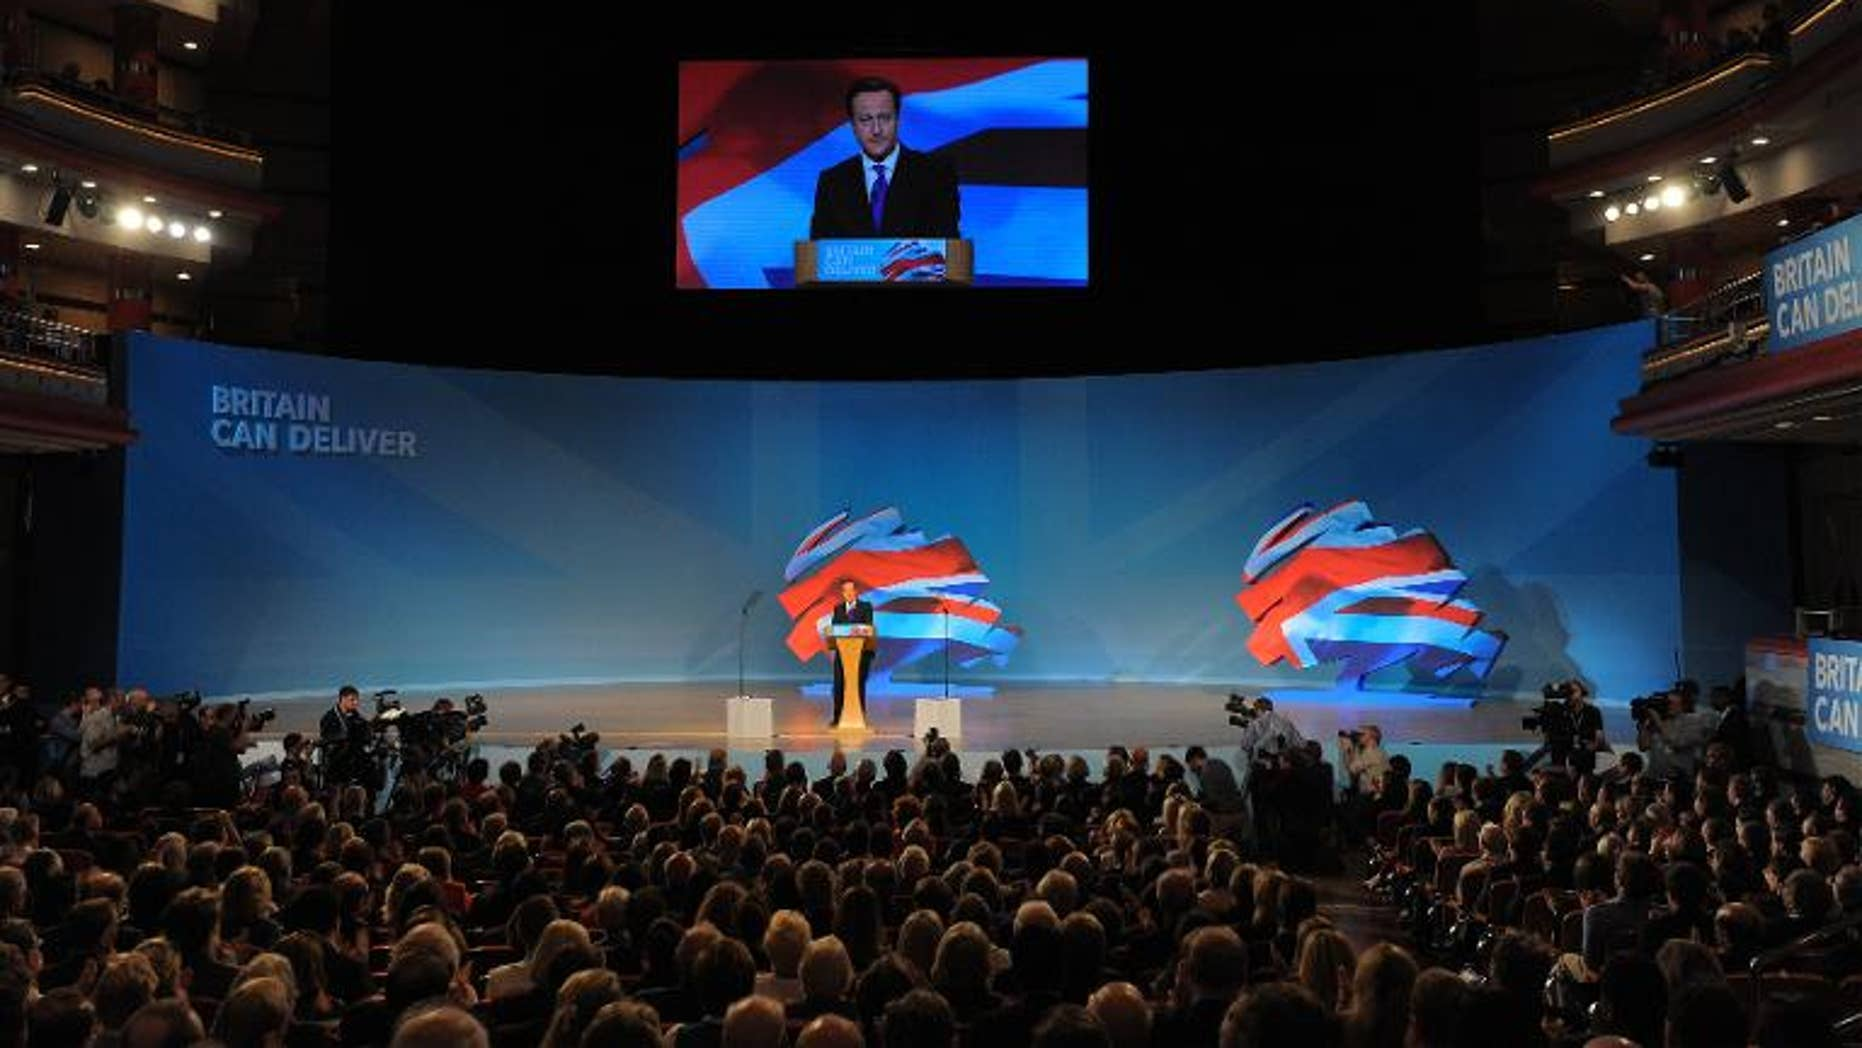 Prime Minister, David Cameron, Leader of the Conservative Party delivers a speech to delegates during the annual Conservative Party Conference at the ICC in Birmingham, on October 10, 2012